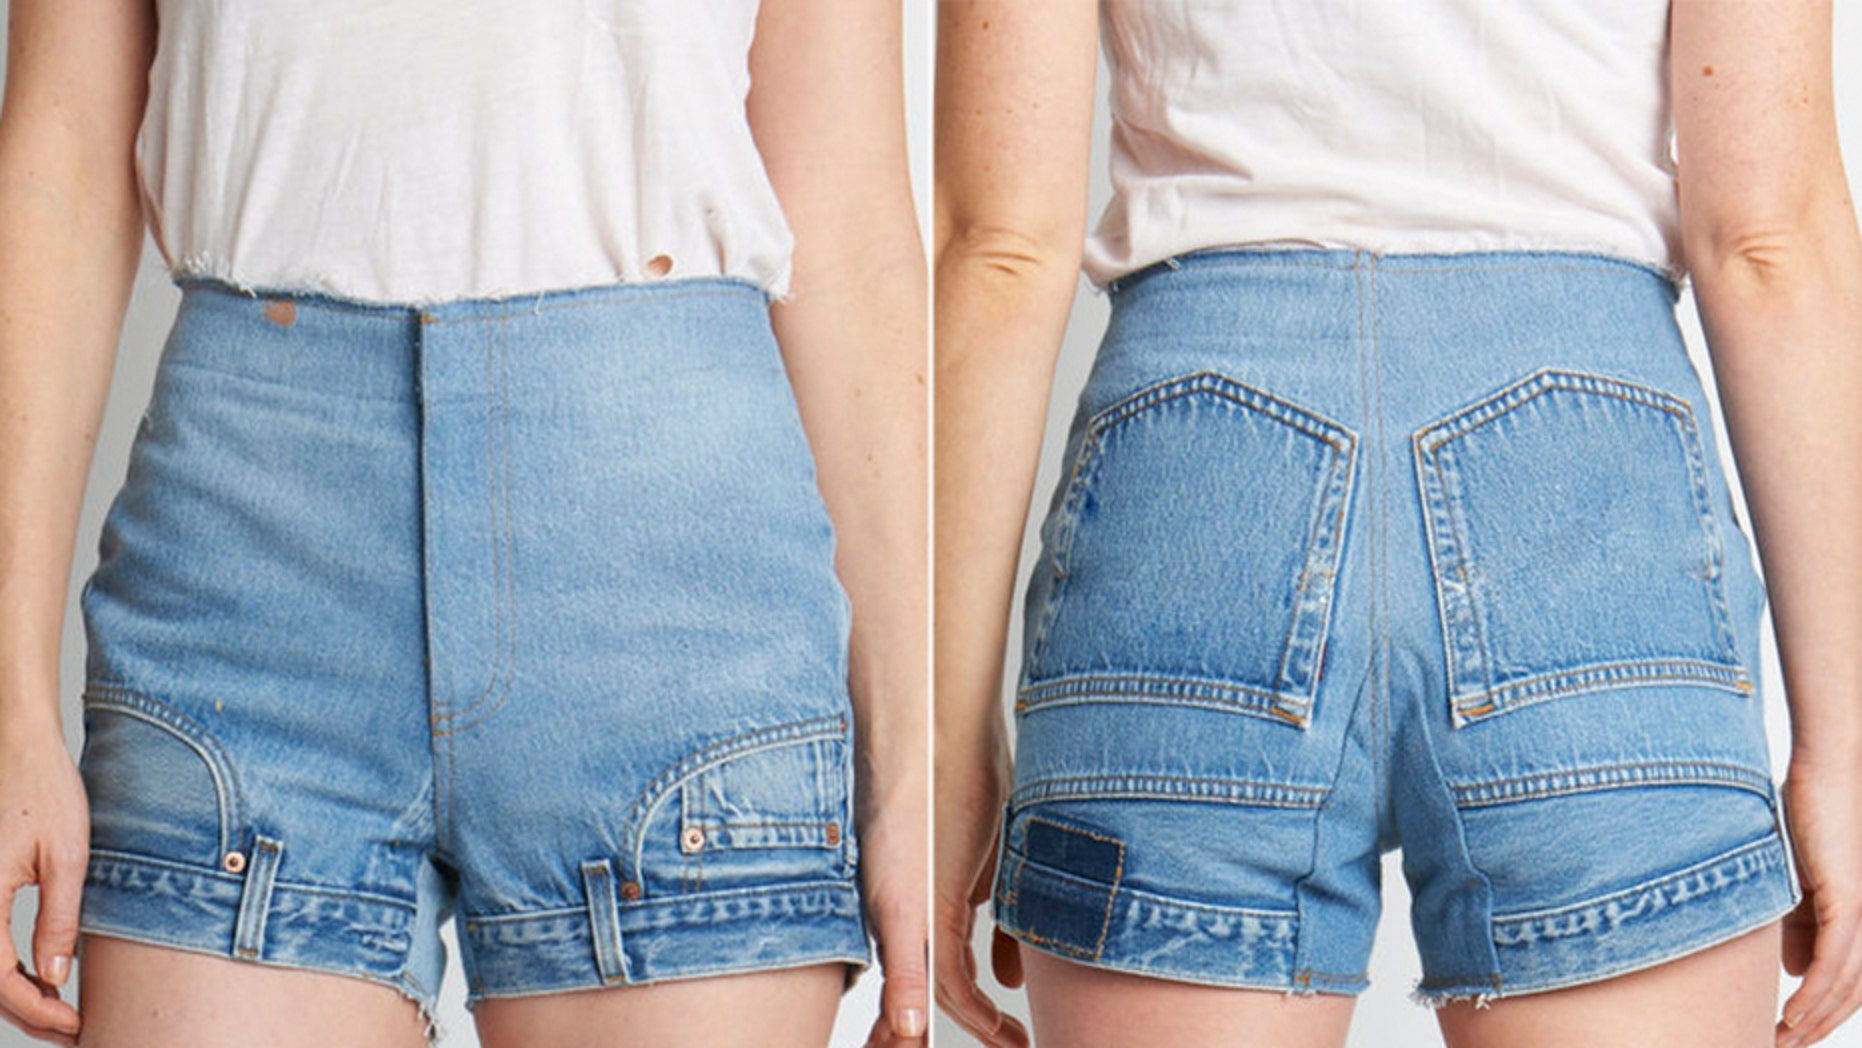 Watch Upside-down jeans may be the next wild denim trend everyone is wearing video